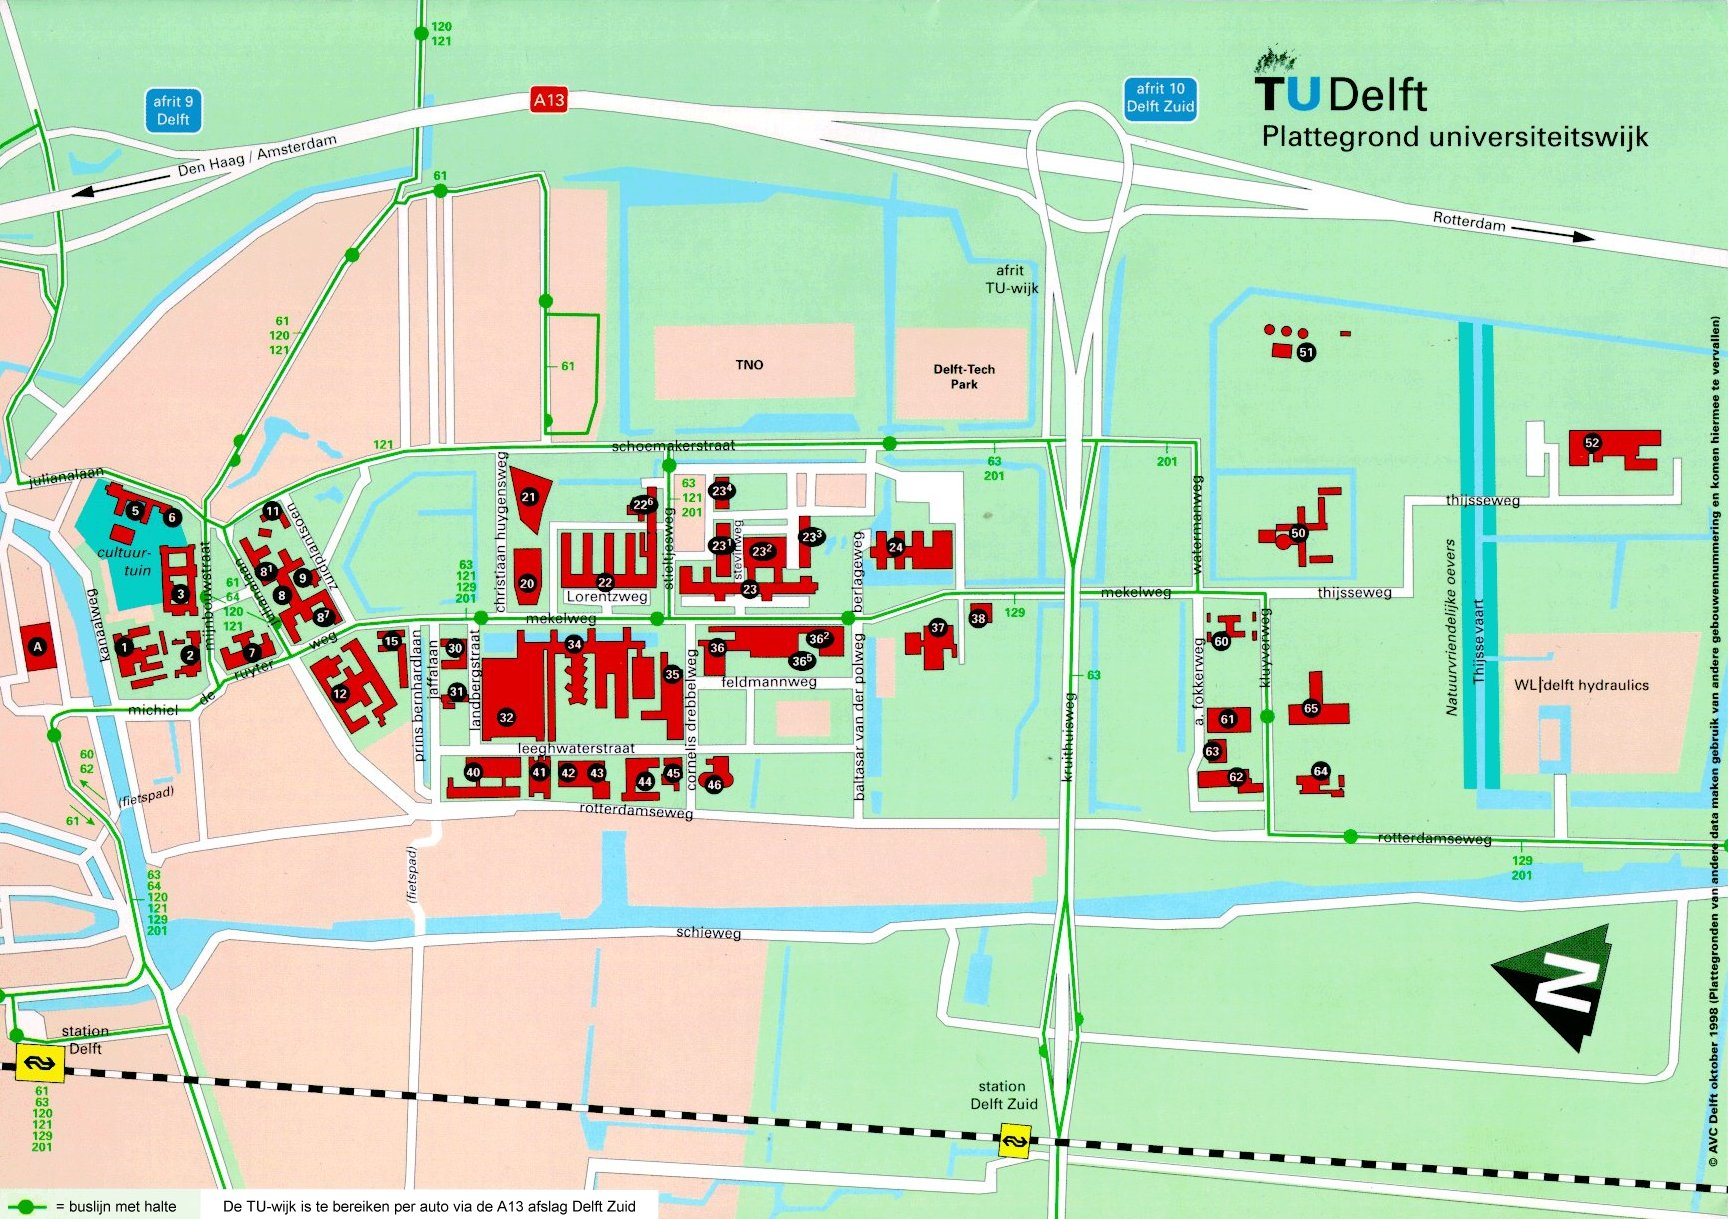 Delft University of Technology Map Delft The Netherlands mappery